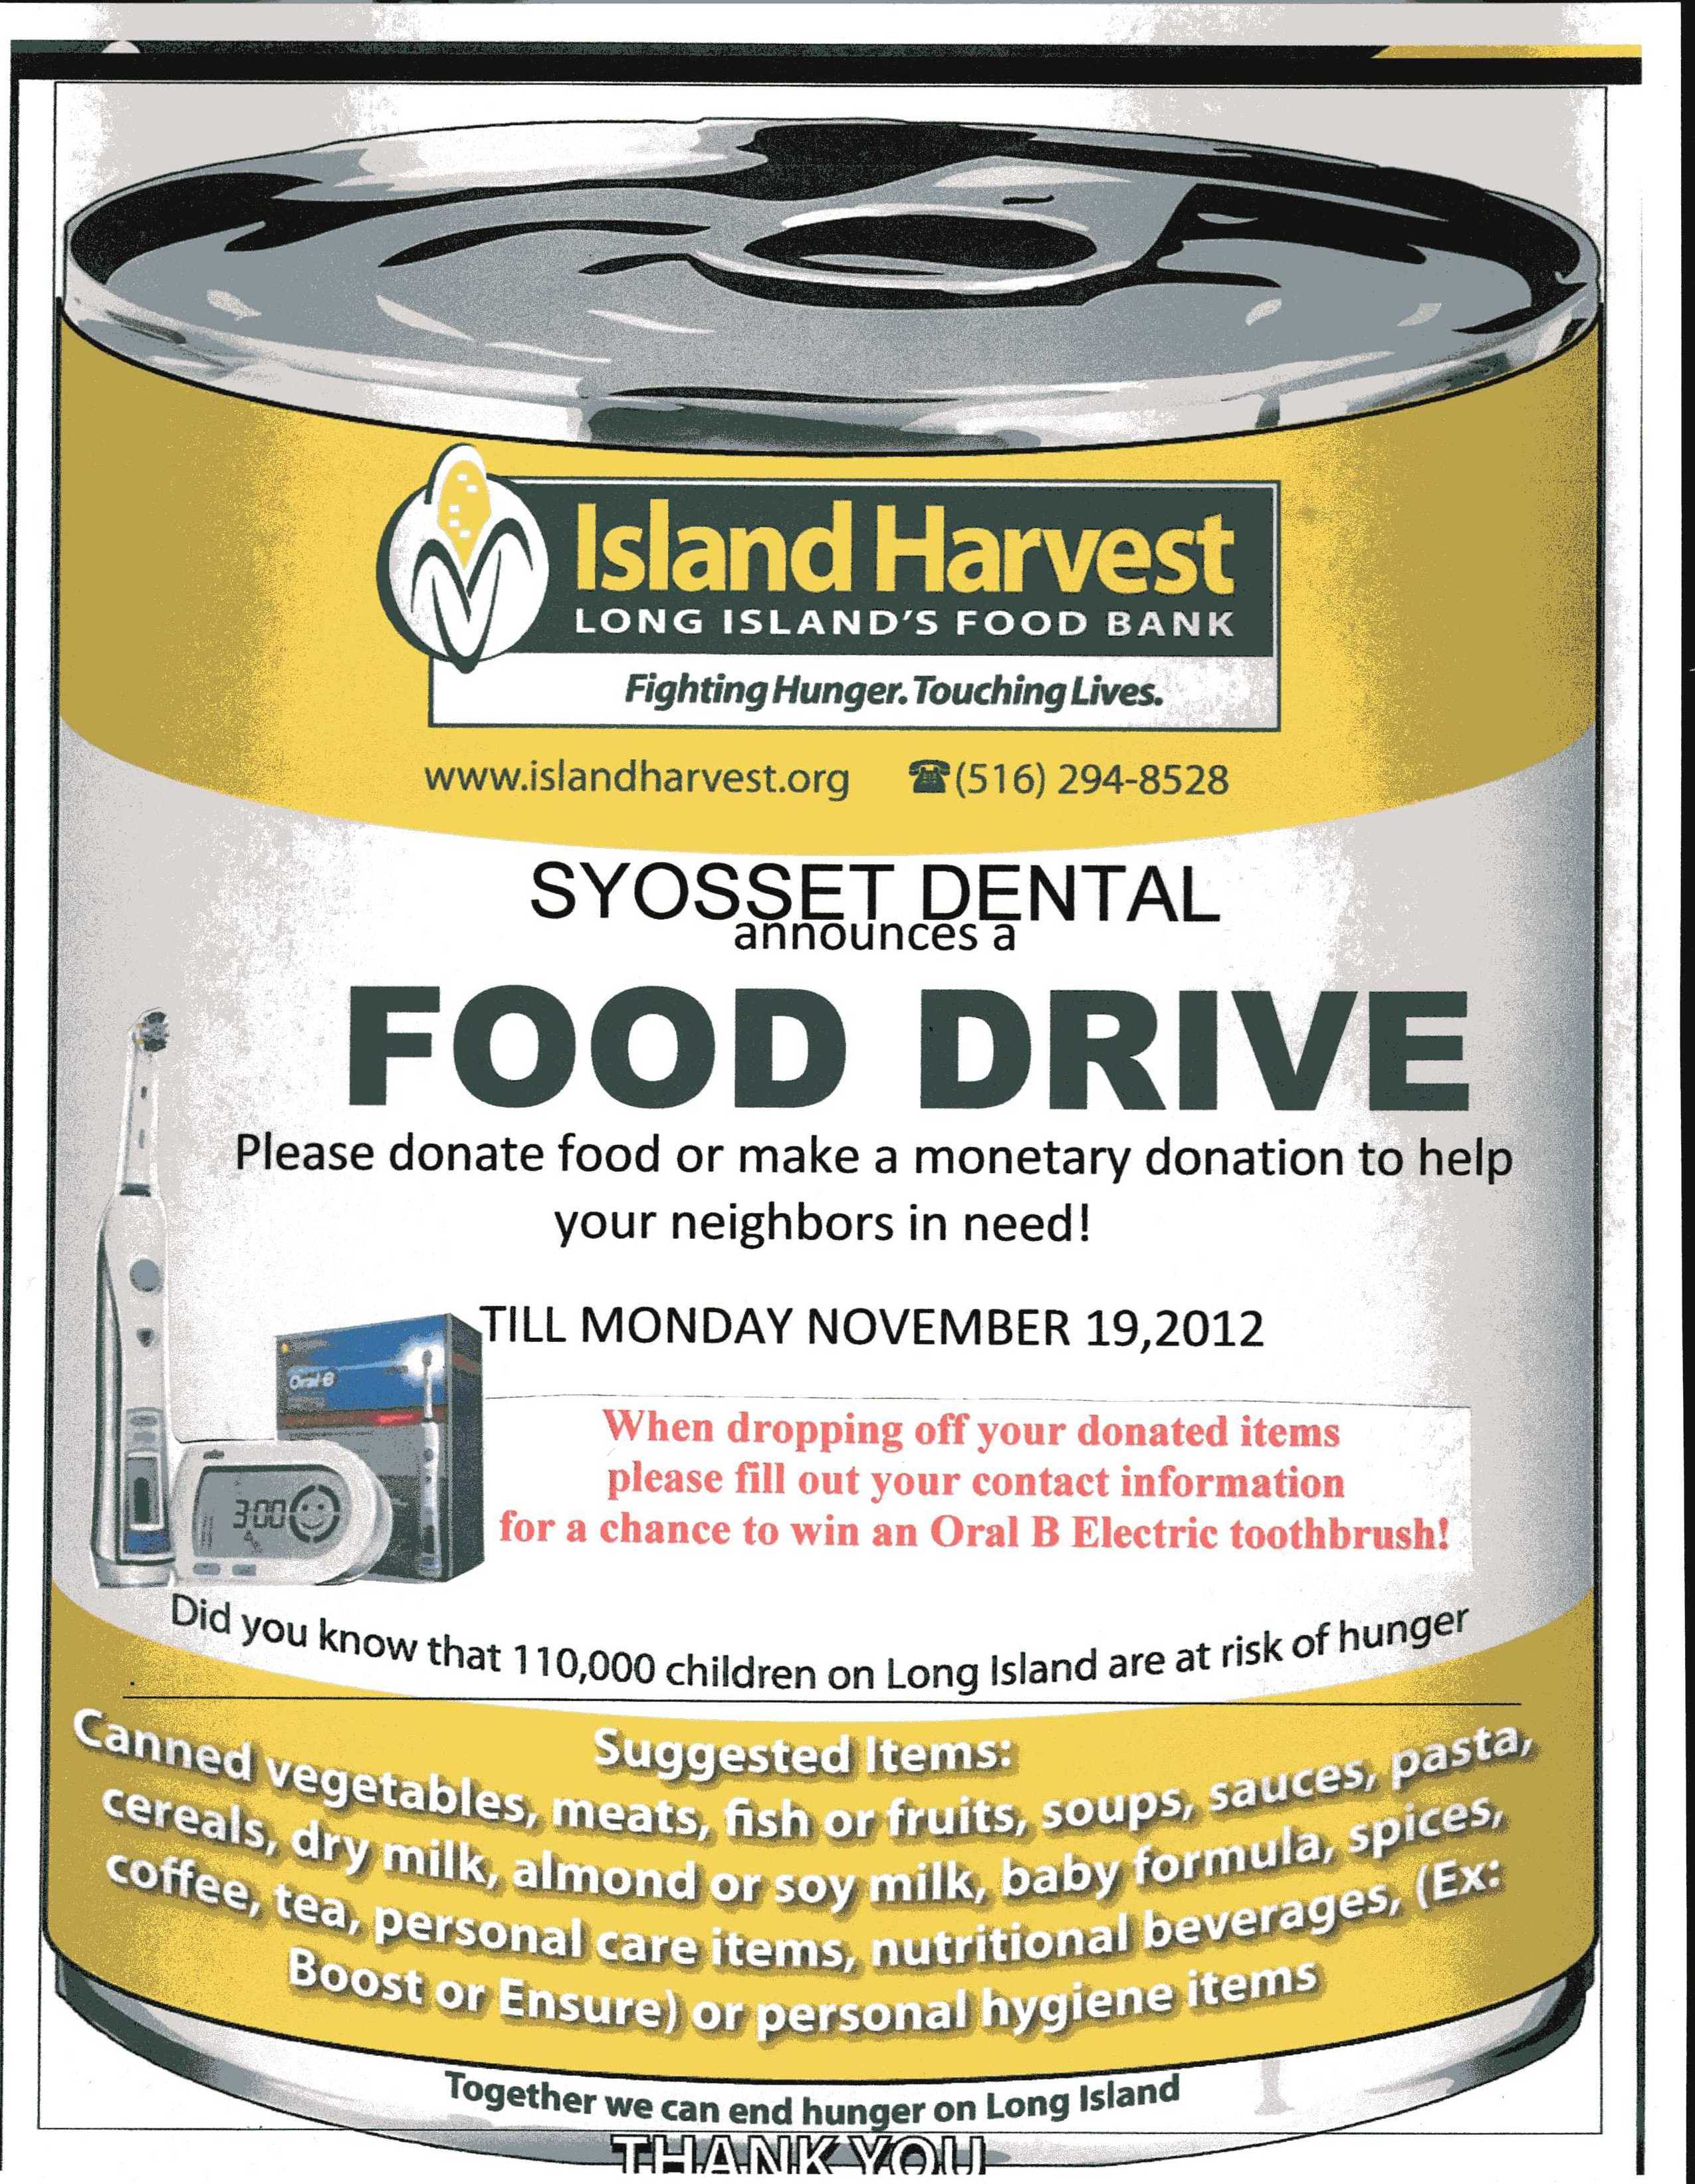 Soup Kitchens In Long Island Help Syosset Dental And Island Harvest End Hunger On Long